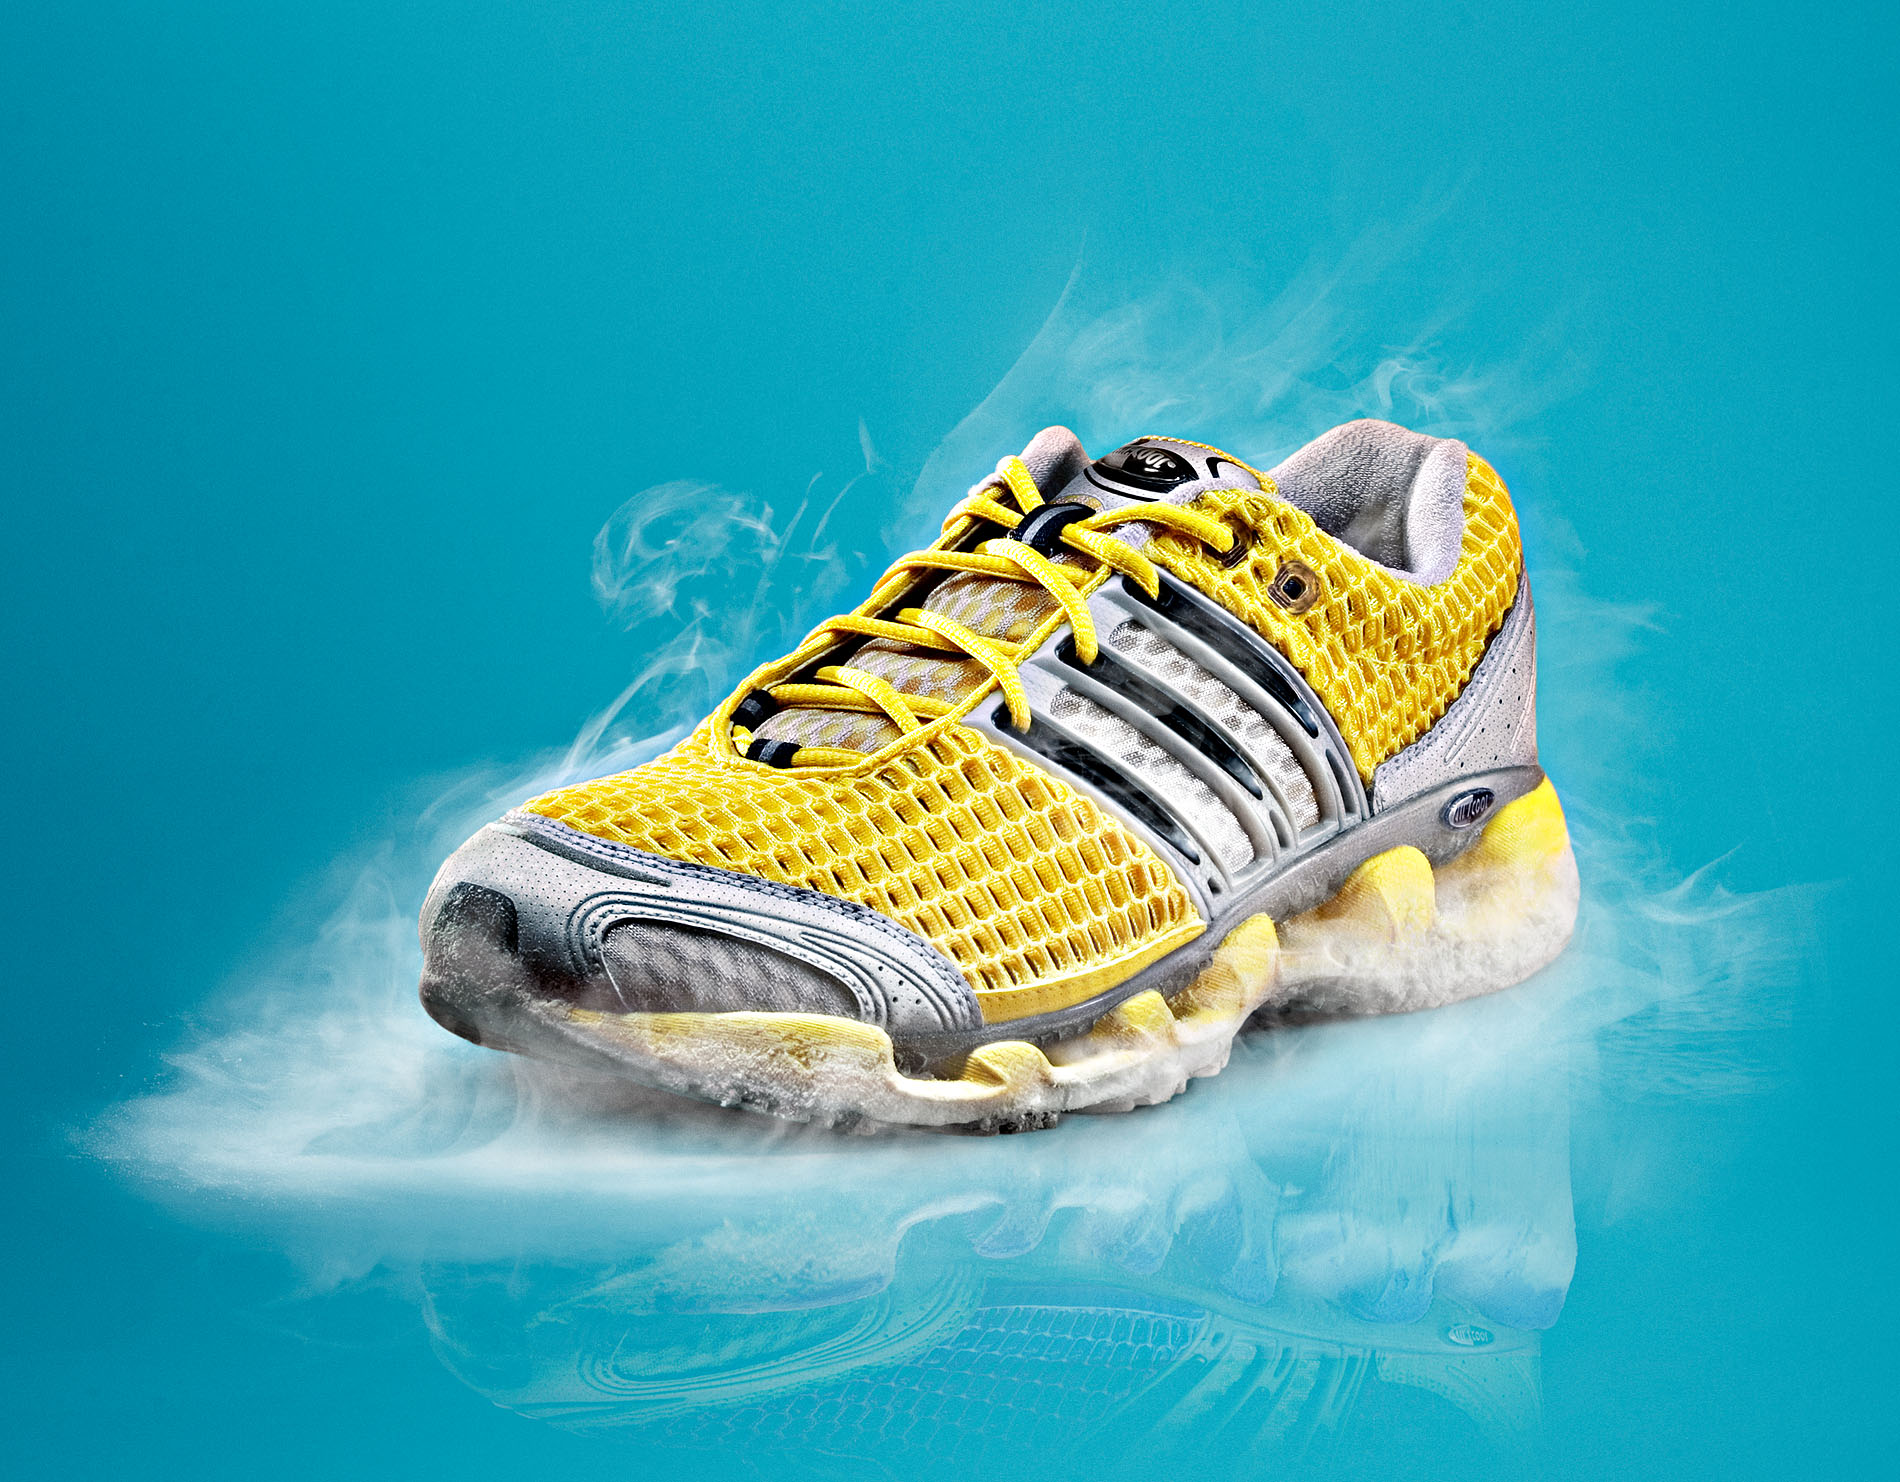 ADIDAS Clima Cool is a composing by Schalterhalle post production and Tobias Winkler - Retouching Munich.